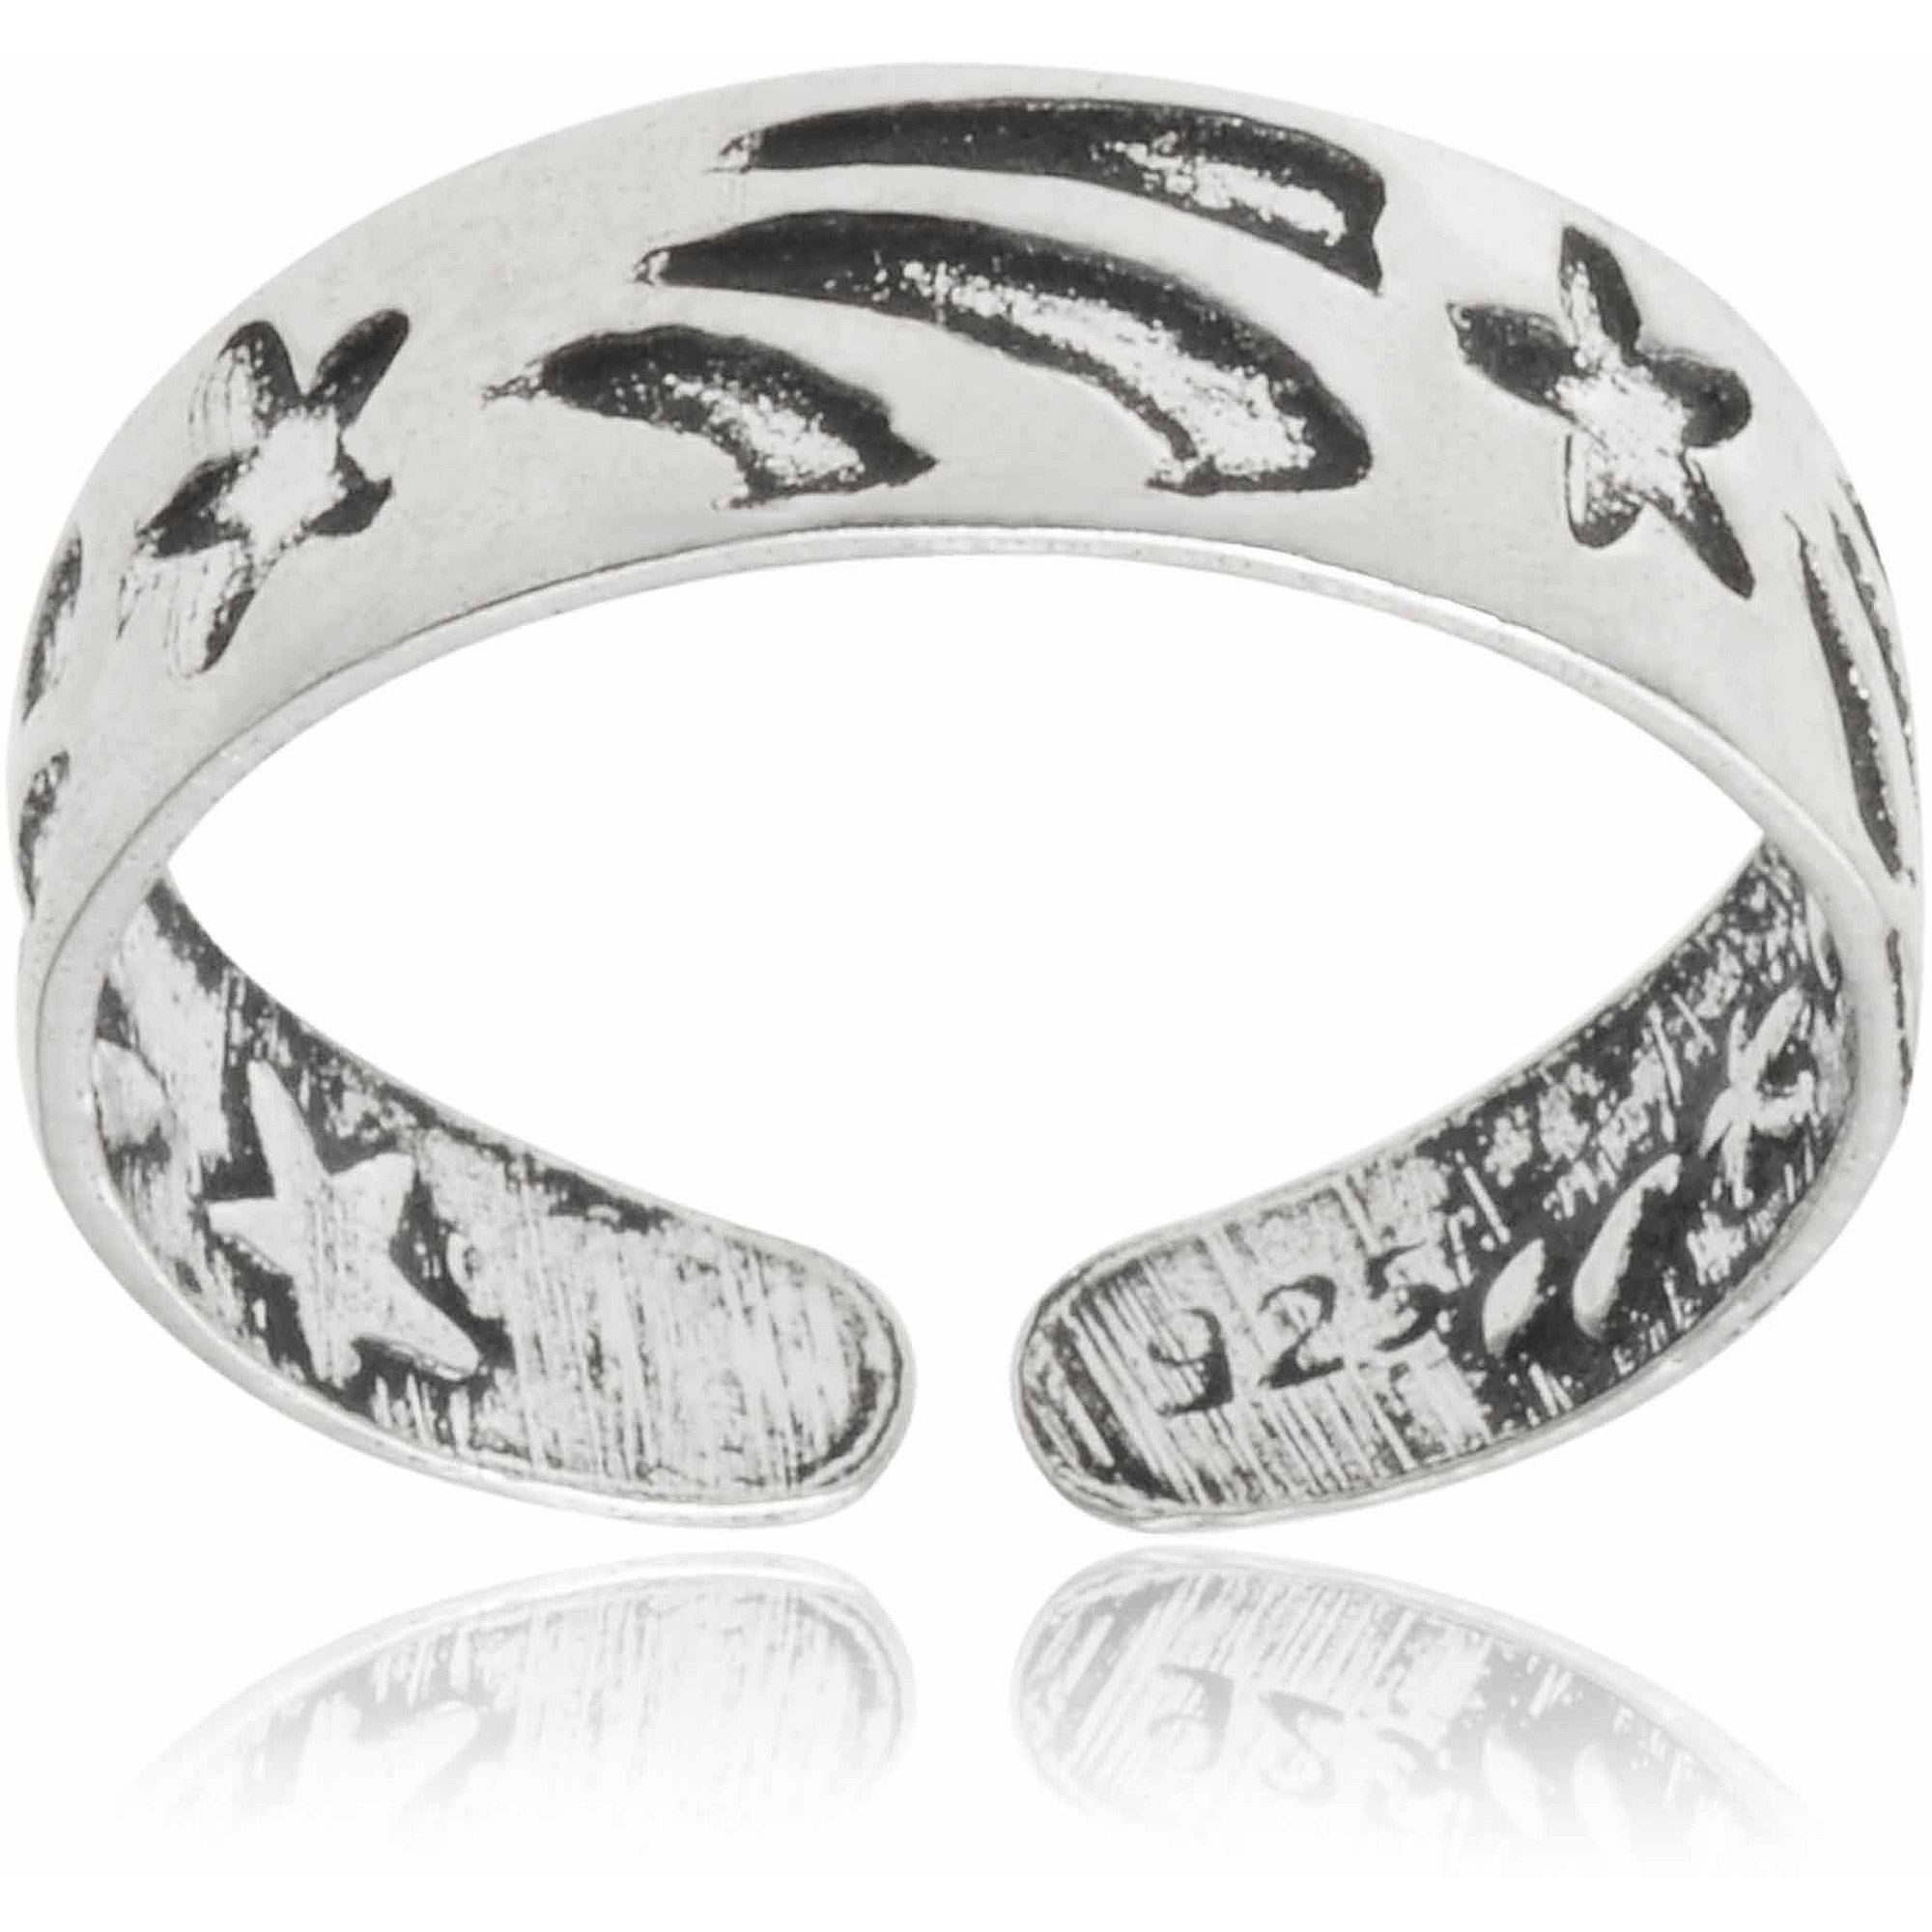 Brinley Co. Women's Sterling Silver Adjustable Oxidized Star Fashion Toe Ring